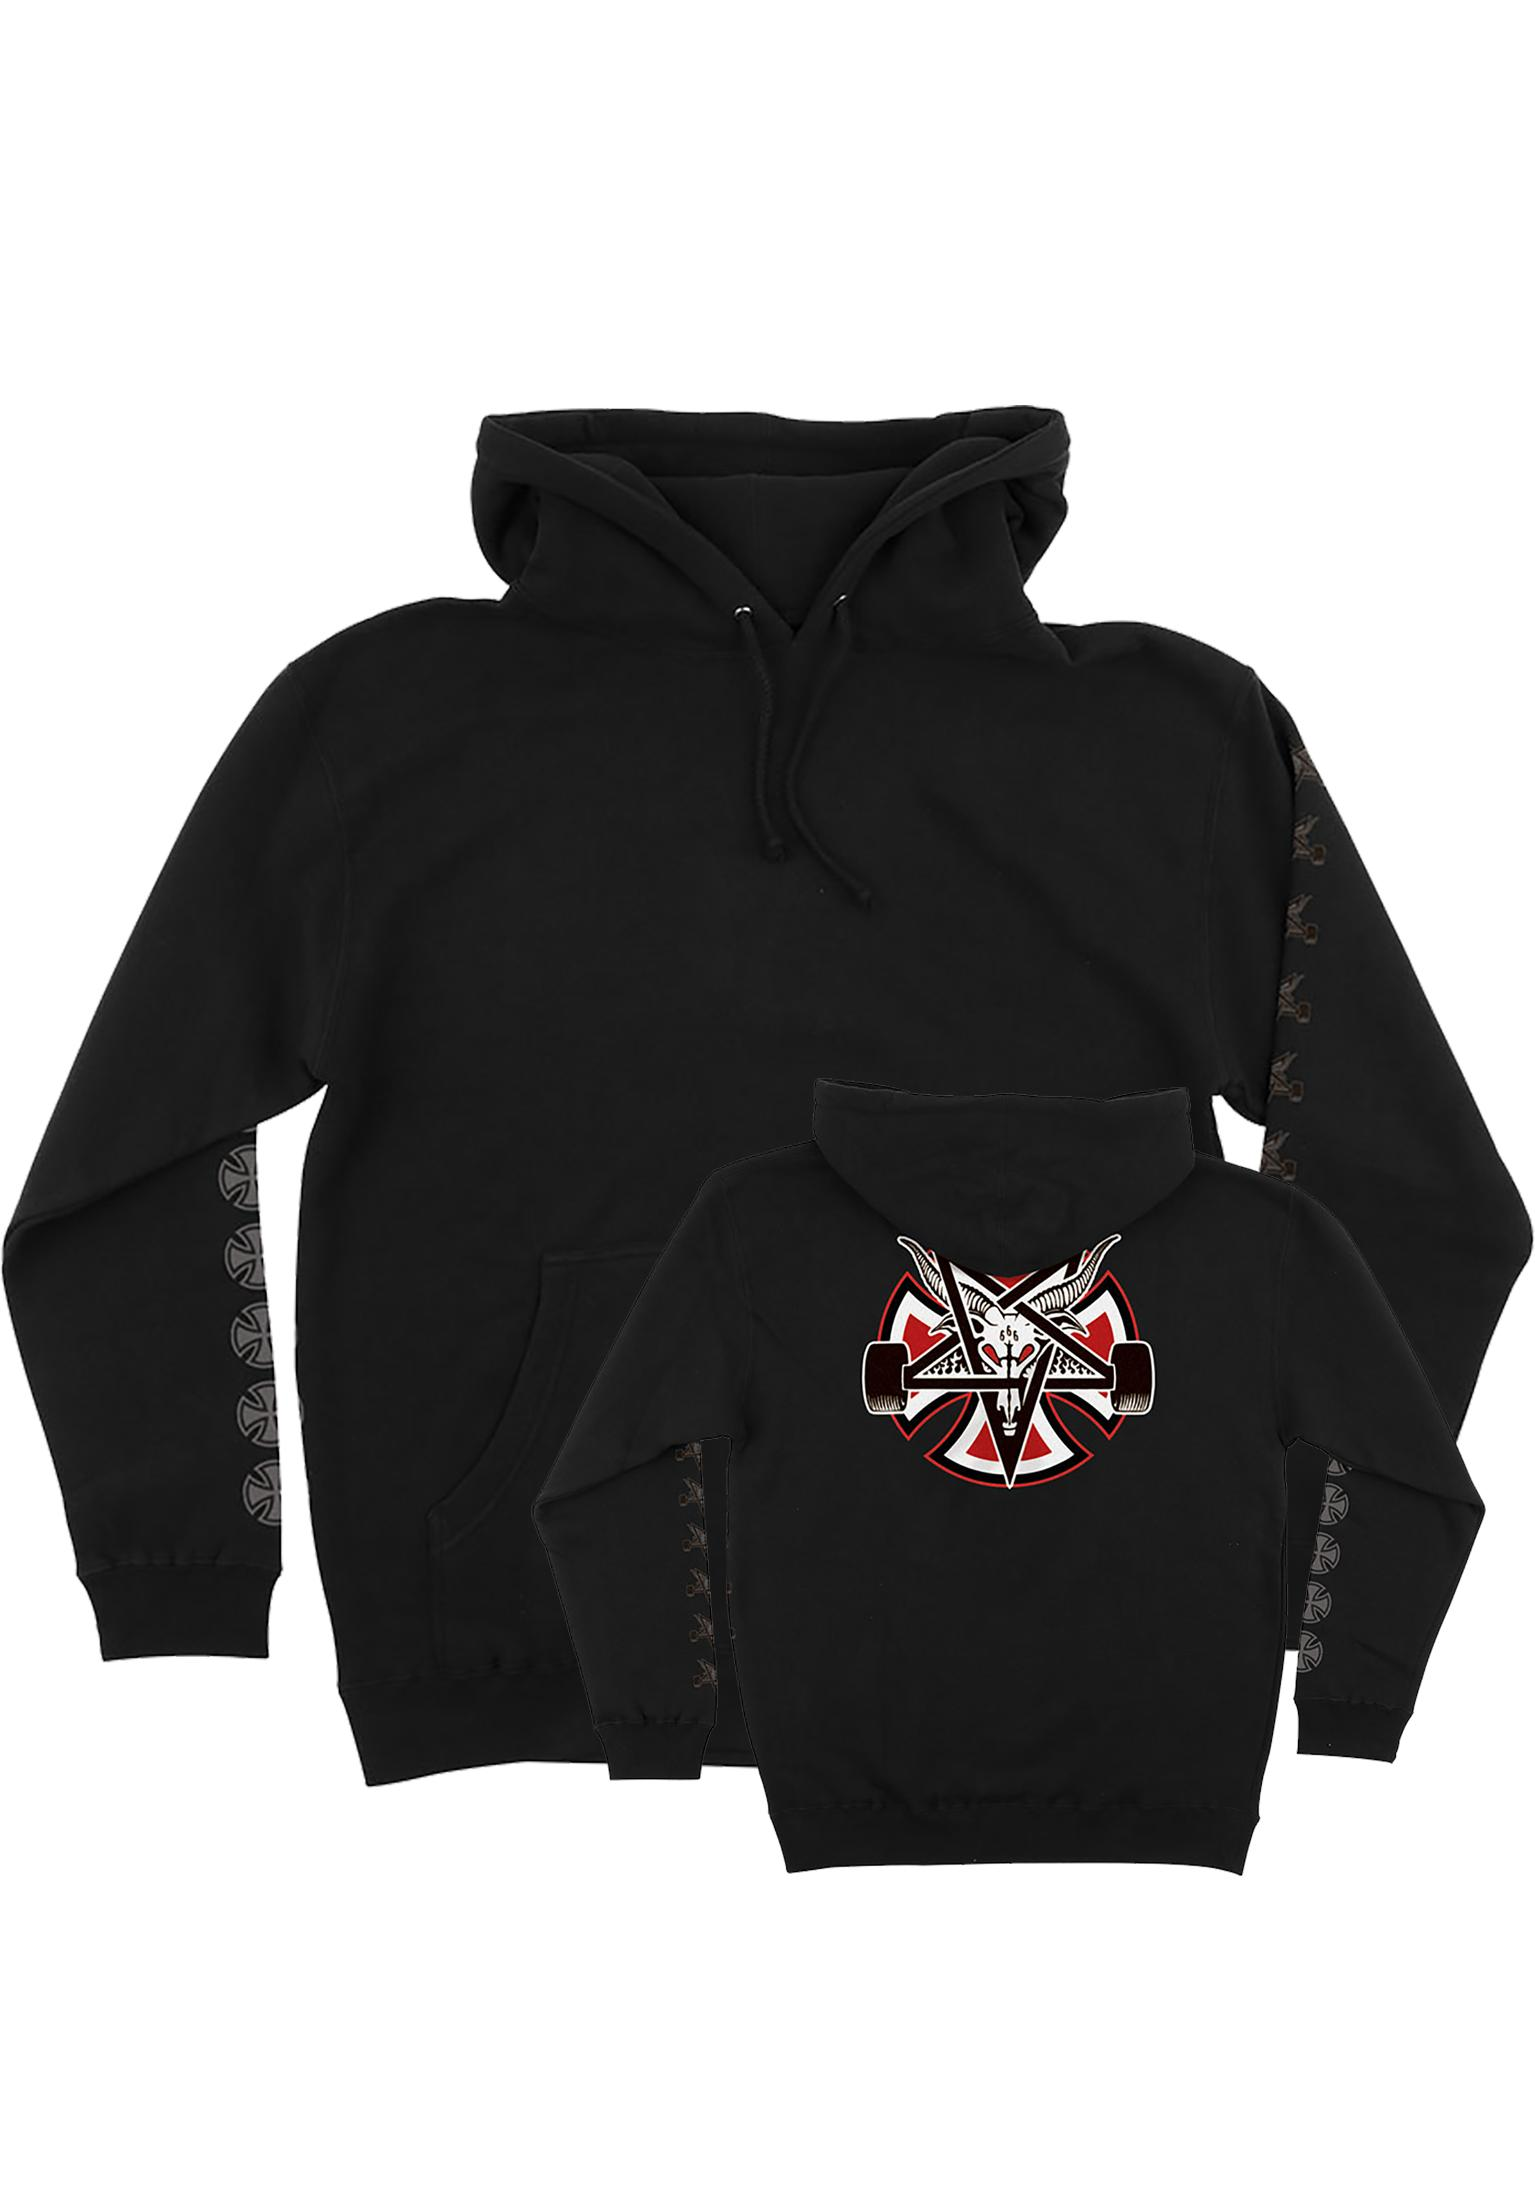 Titus_Muenchen_independent-hoodie-thrasher-pentagram-cross-lightweight-black-0444942.jpg